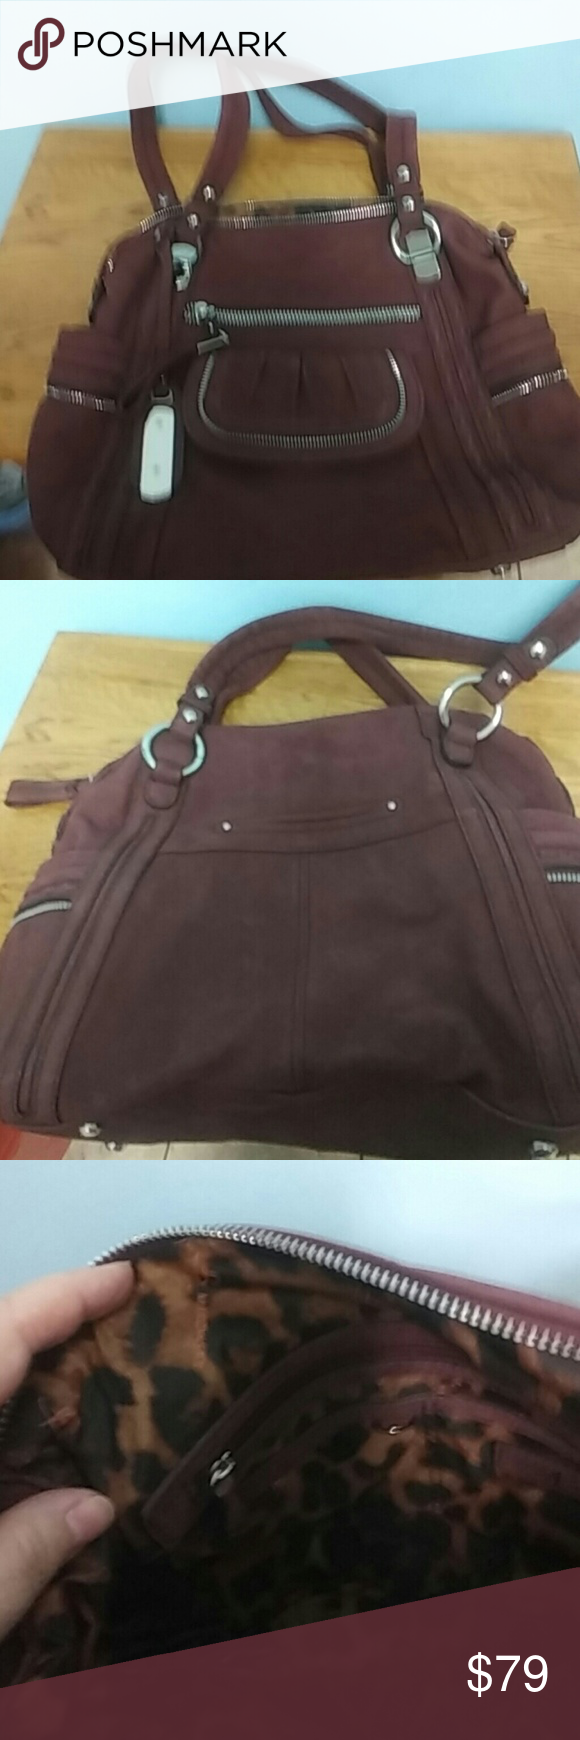 Reduced! B Makowsky zip-top satchel, berry color. All reasonable offers considered! Suede leather with polyester leopard-print lining.  1 zip pocket outside and 4 other outside pockets. 1 zip pocket inside.  Excellent condition; only used once. B. Makowsky Bags Satchels